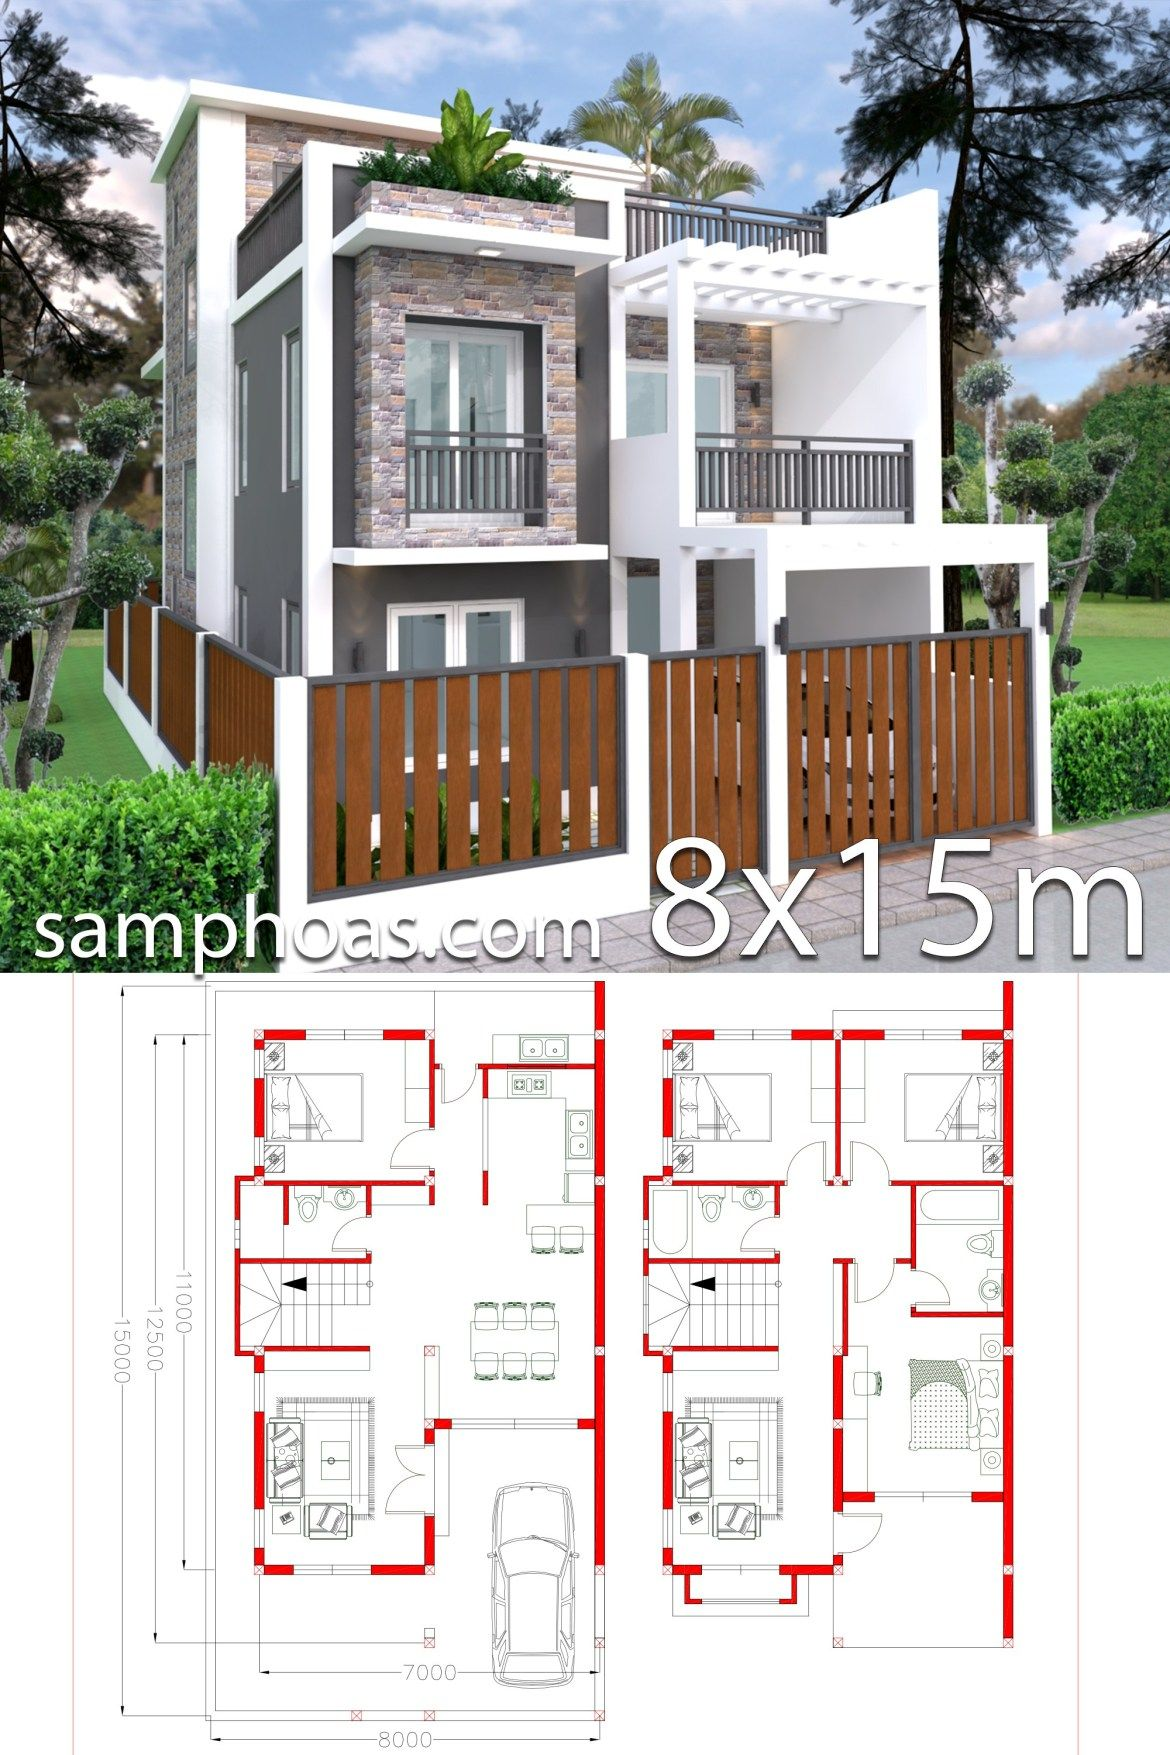 Home Design Plan 7x11m Plot 8x15 With 4 Bedrooms Samphoas Plansearch House Construction Plan House Layout Plans Architectural House Plans